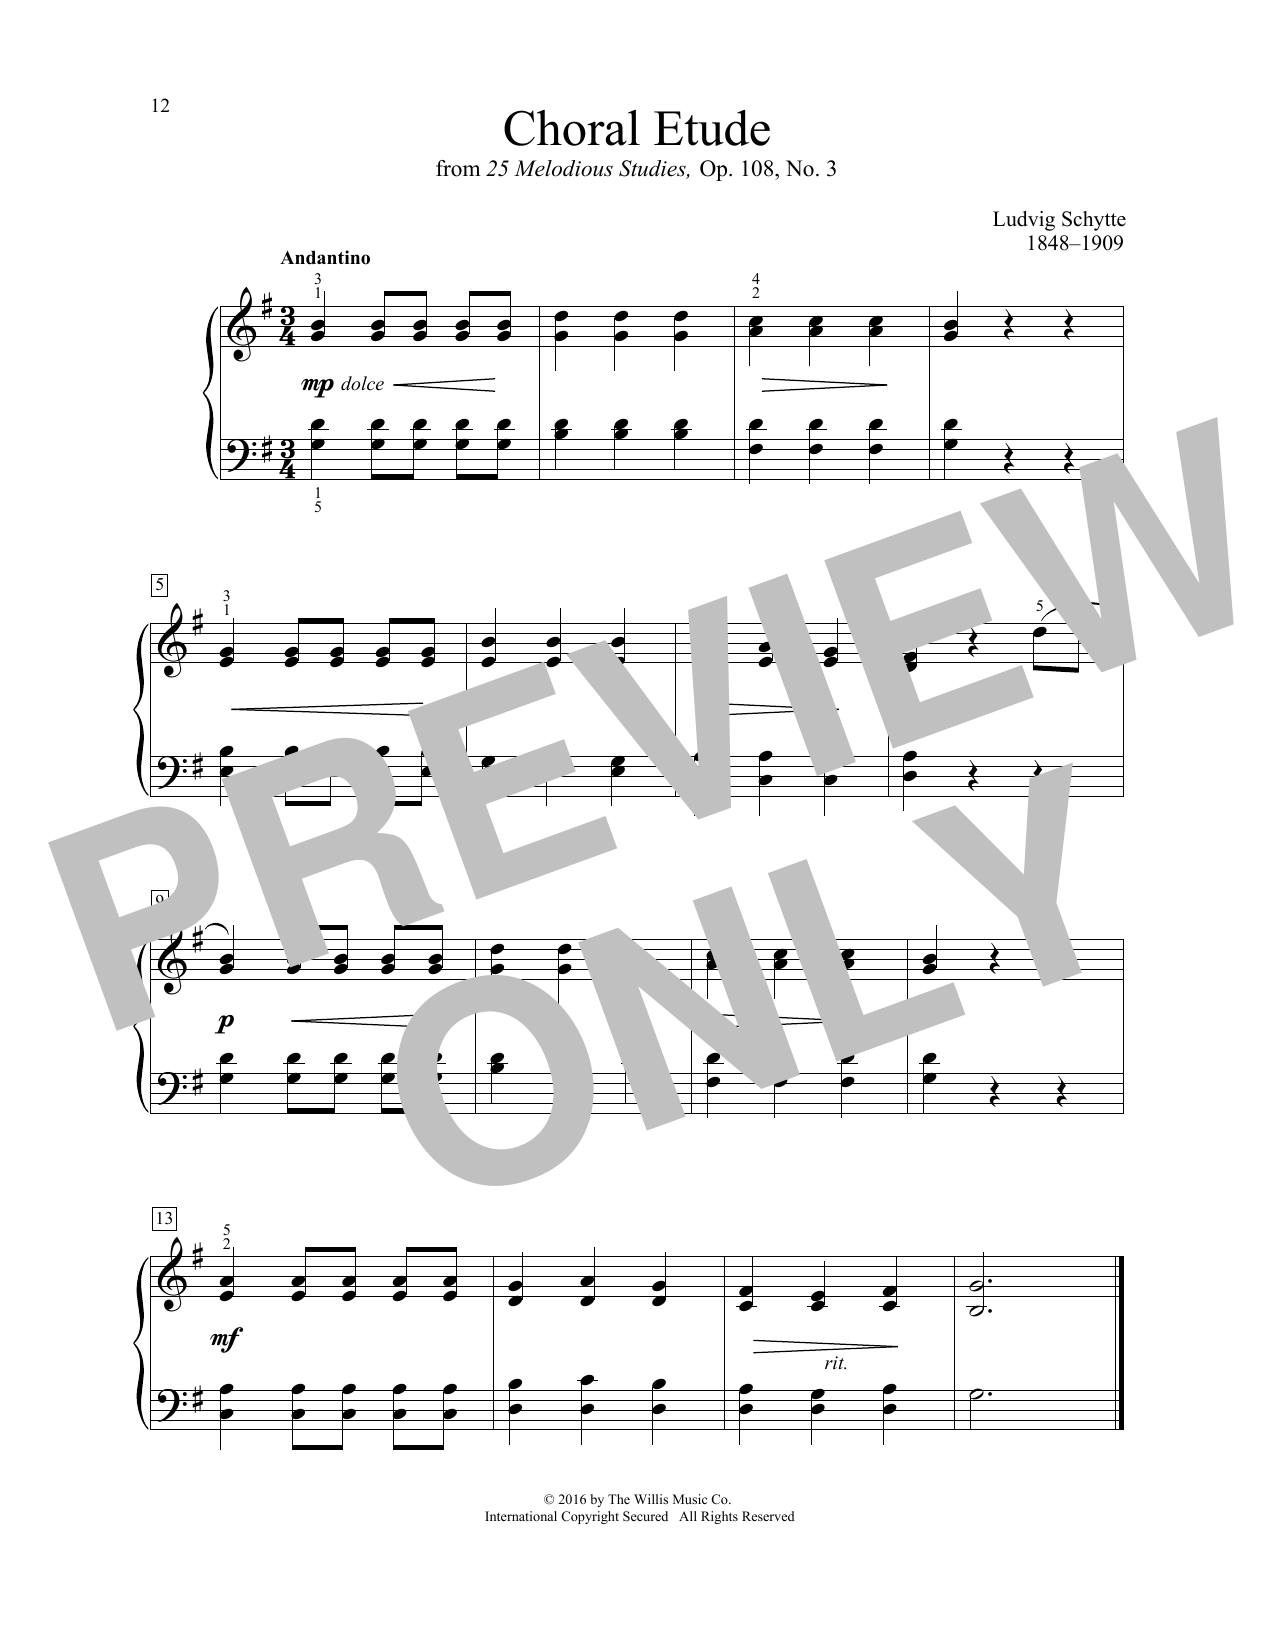 Ludvig Schytte Choral Etude sheet music notes and chords. Download Printable PDF.